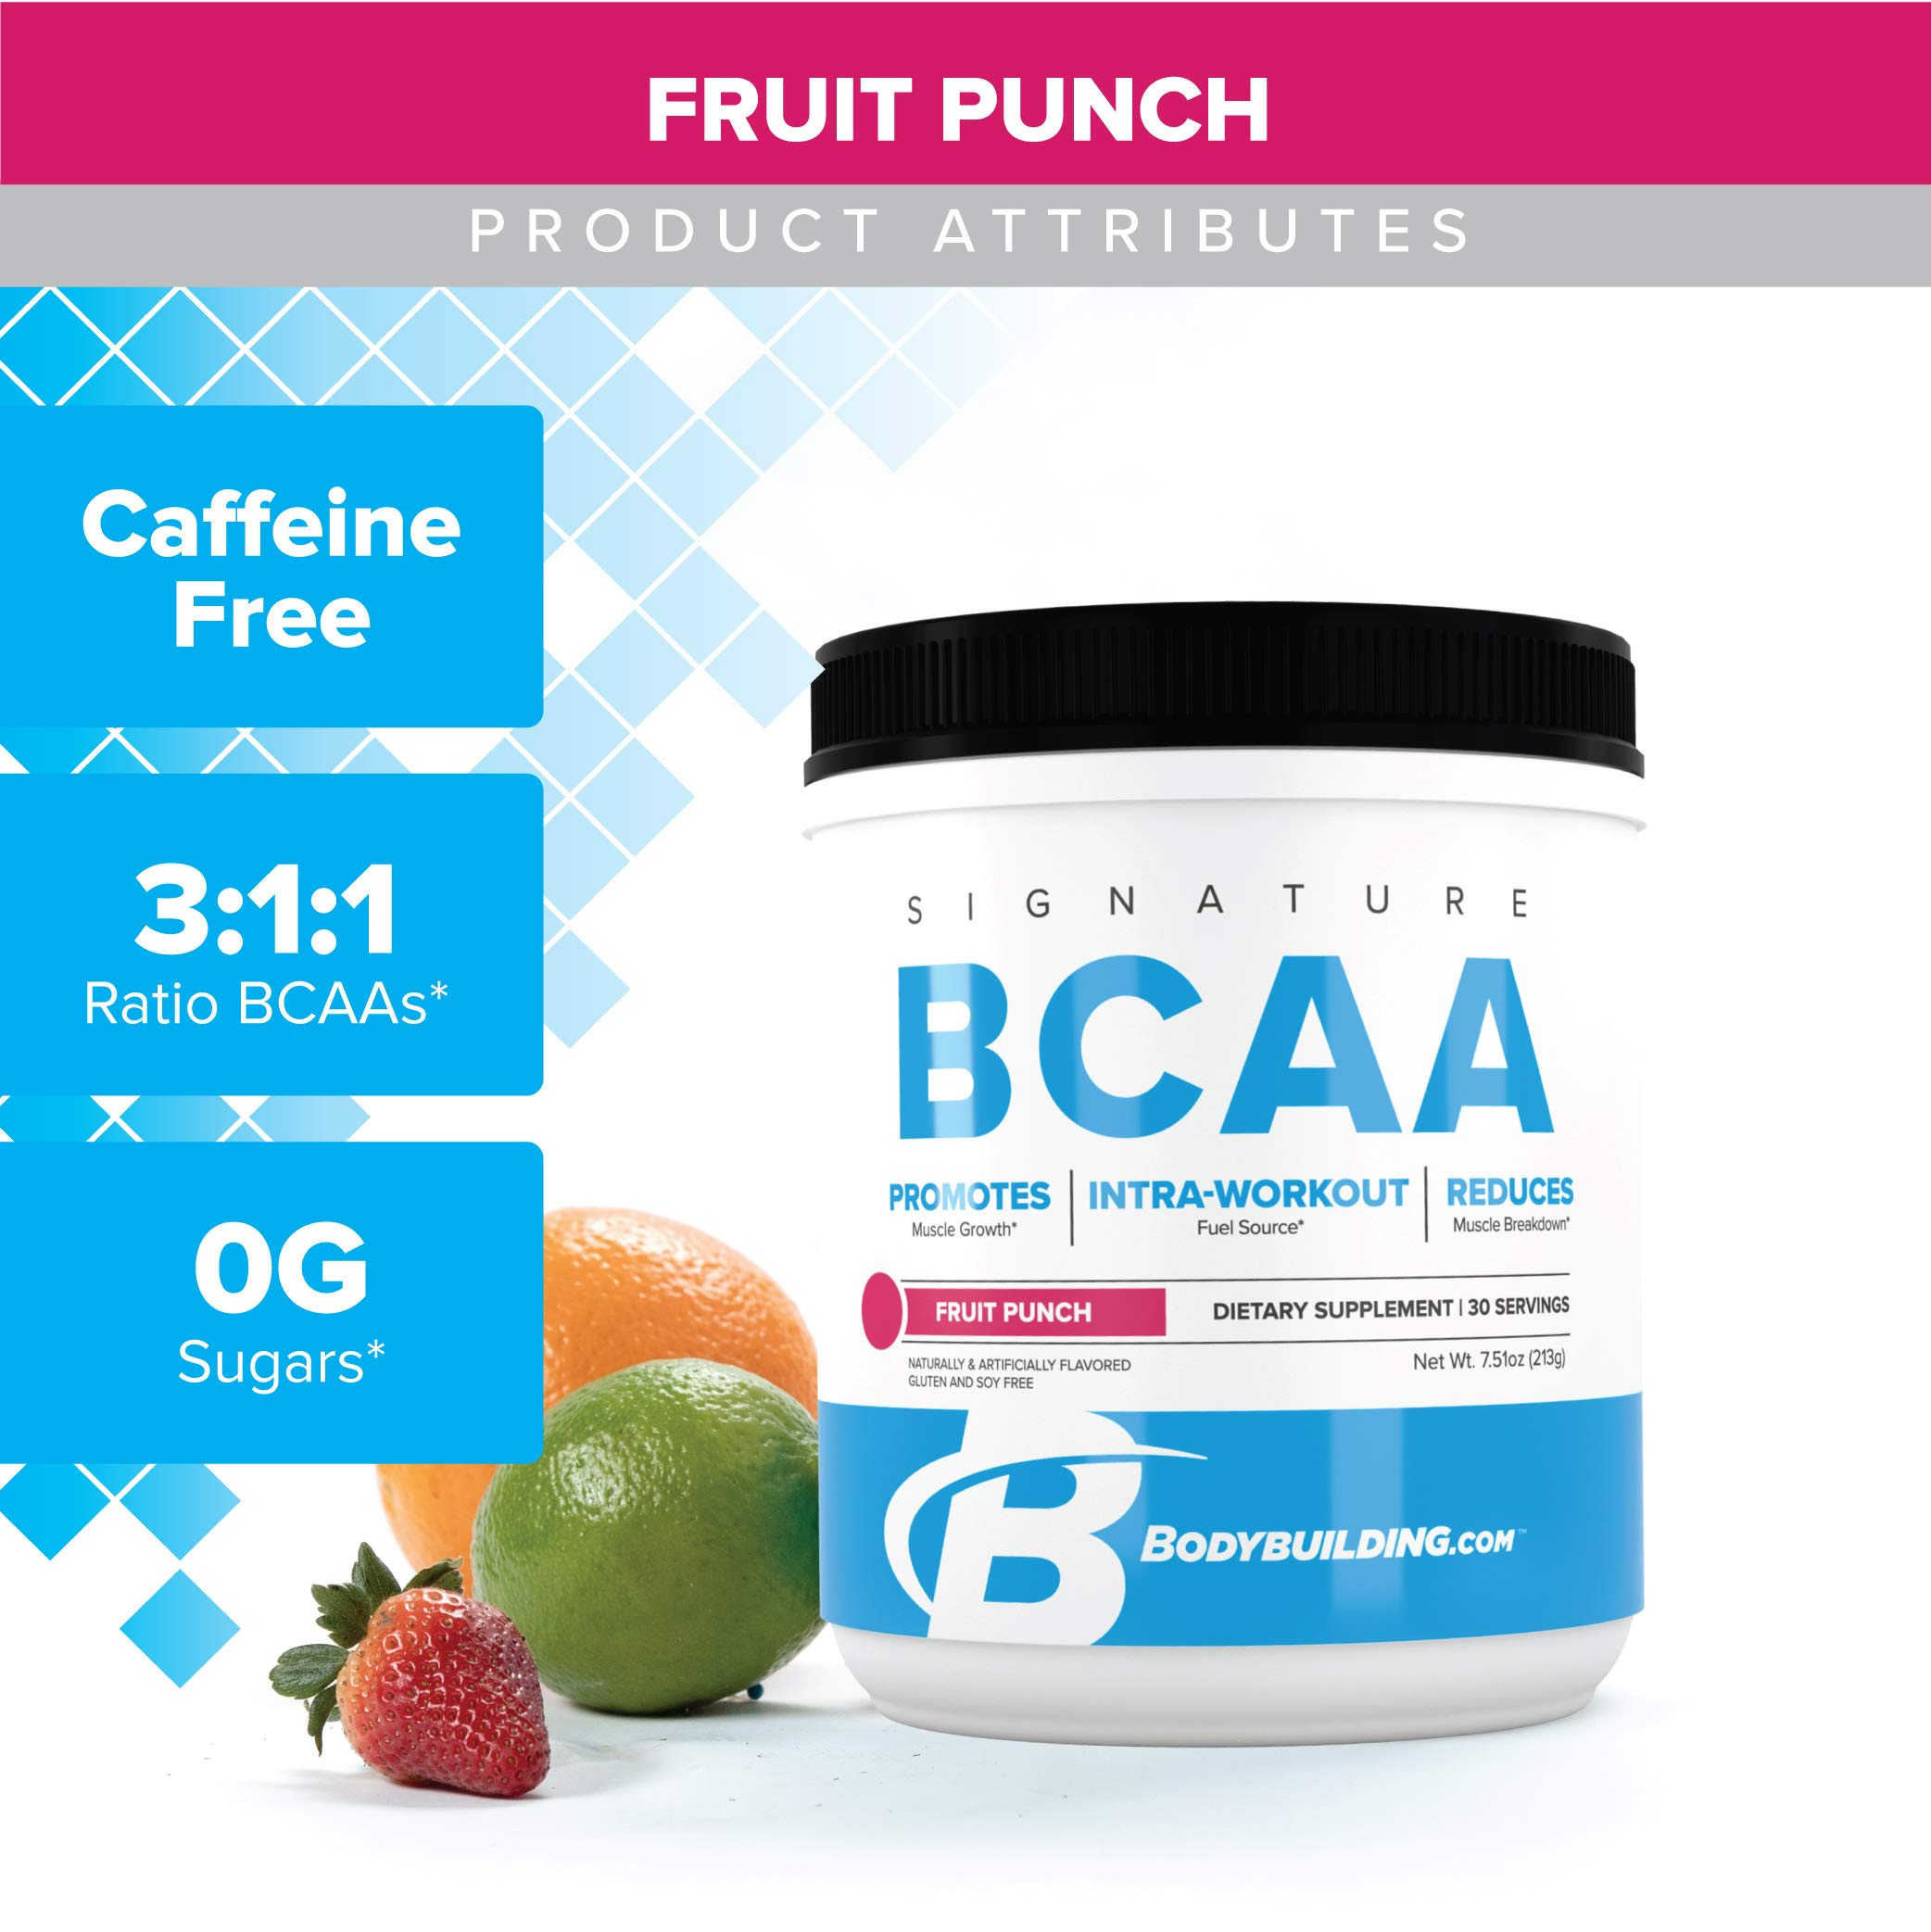 Bodybuilding Signature BCAA Powder   Essential Amino Acids   Nutrition Supplement   Promote Muscle Growth and Recovery   30 Servings, Fruit Punch by Bodybuilding.com